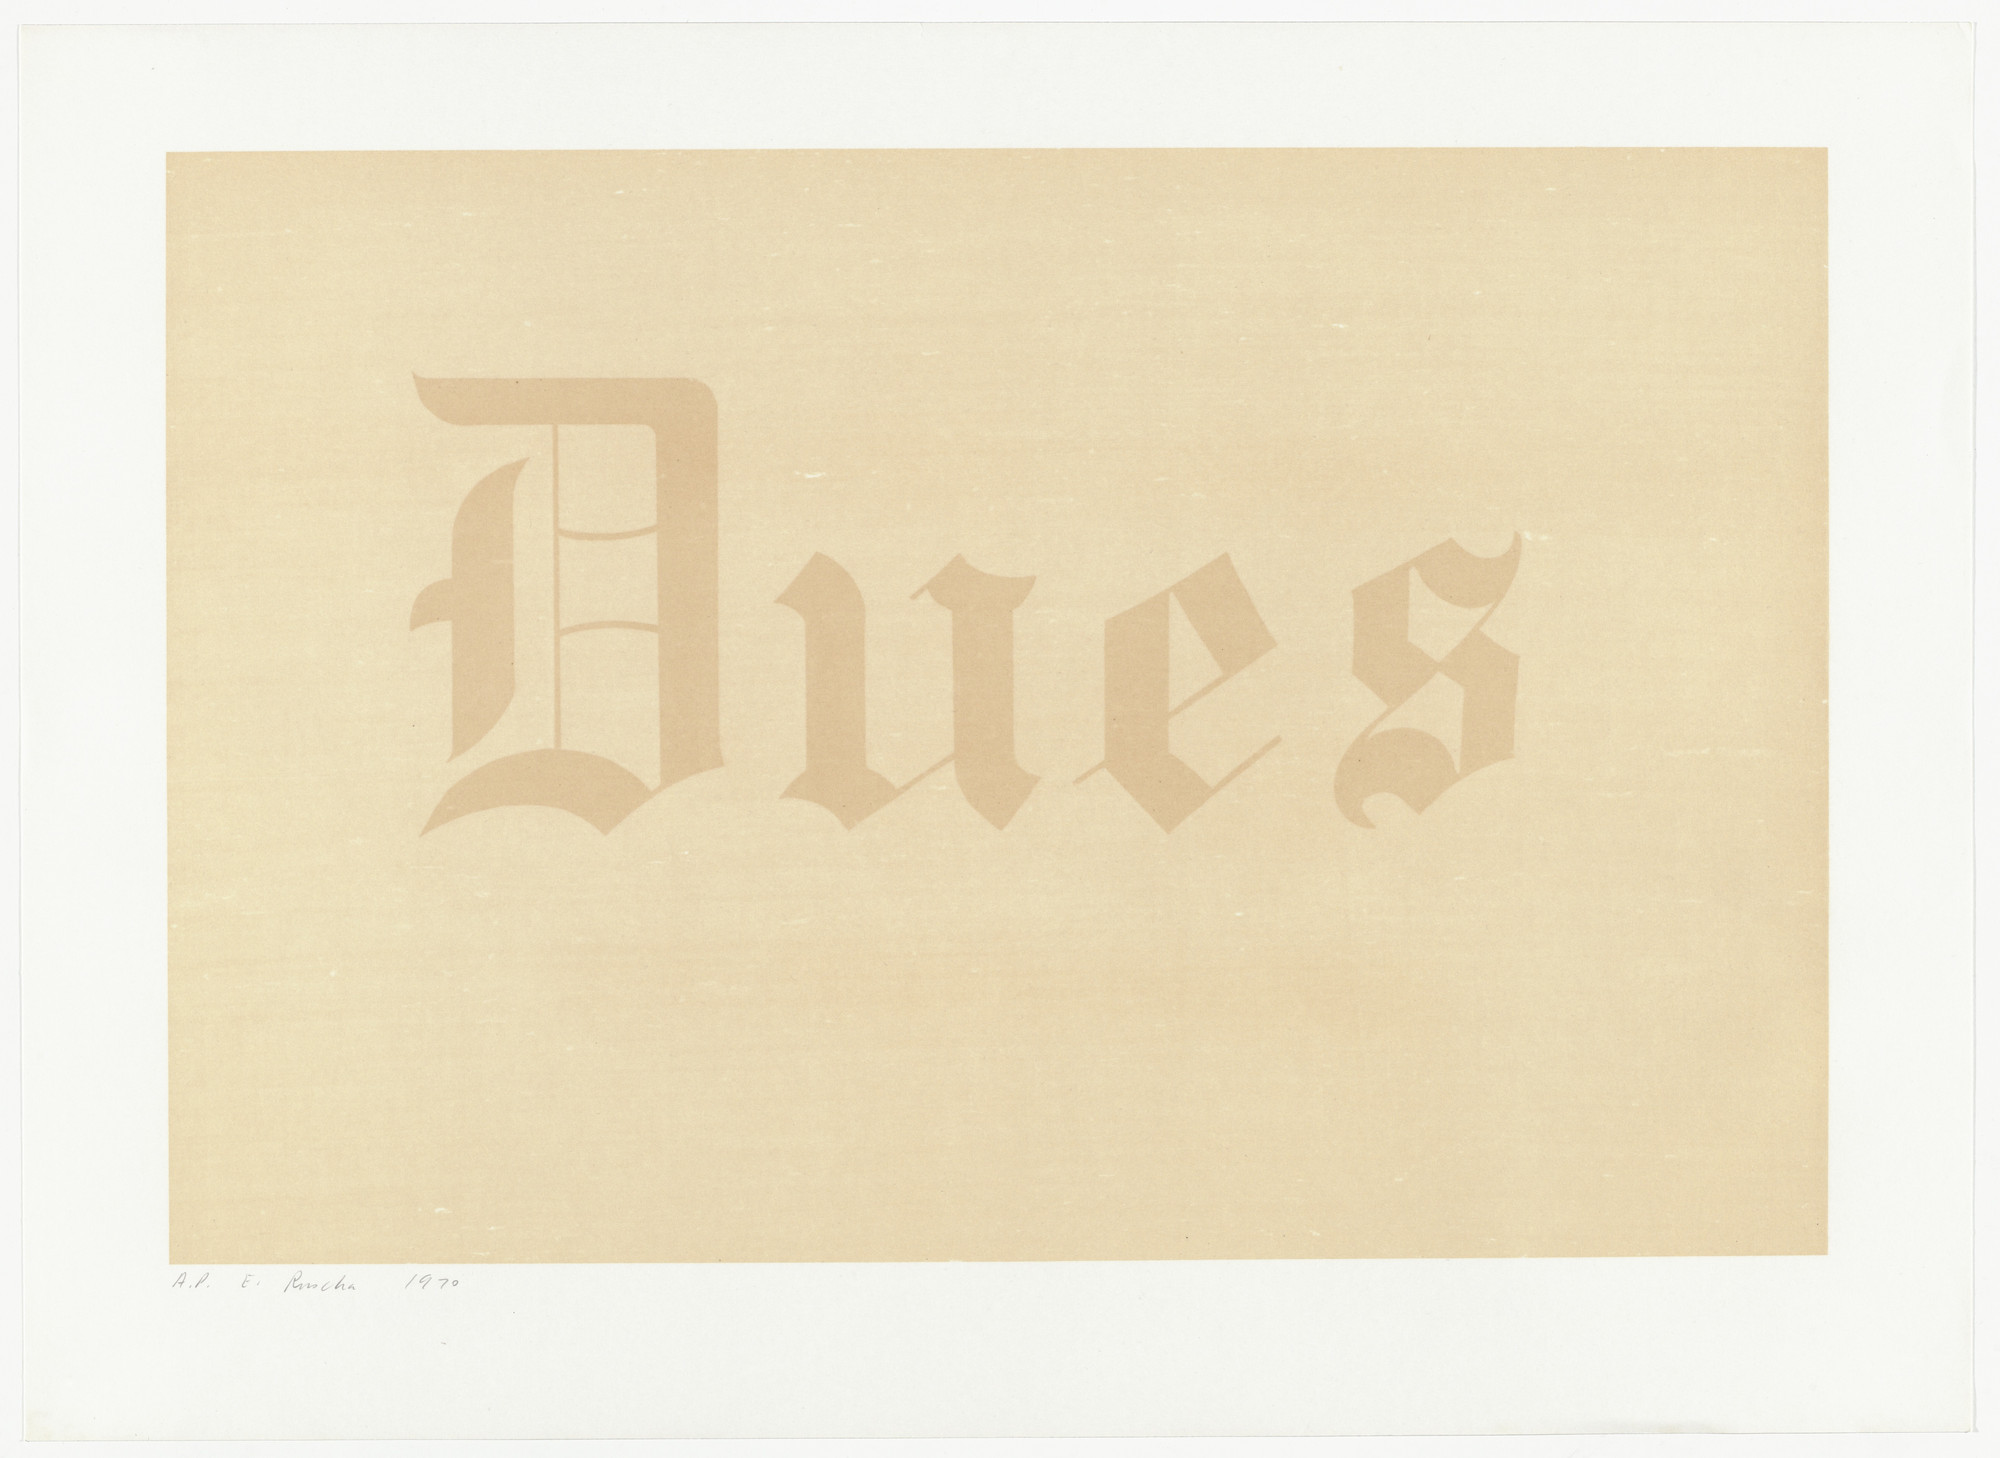 Edward Ruscha. Dues from News, Mews, Pews, Brews, Stews & Dues. 1970